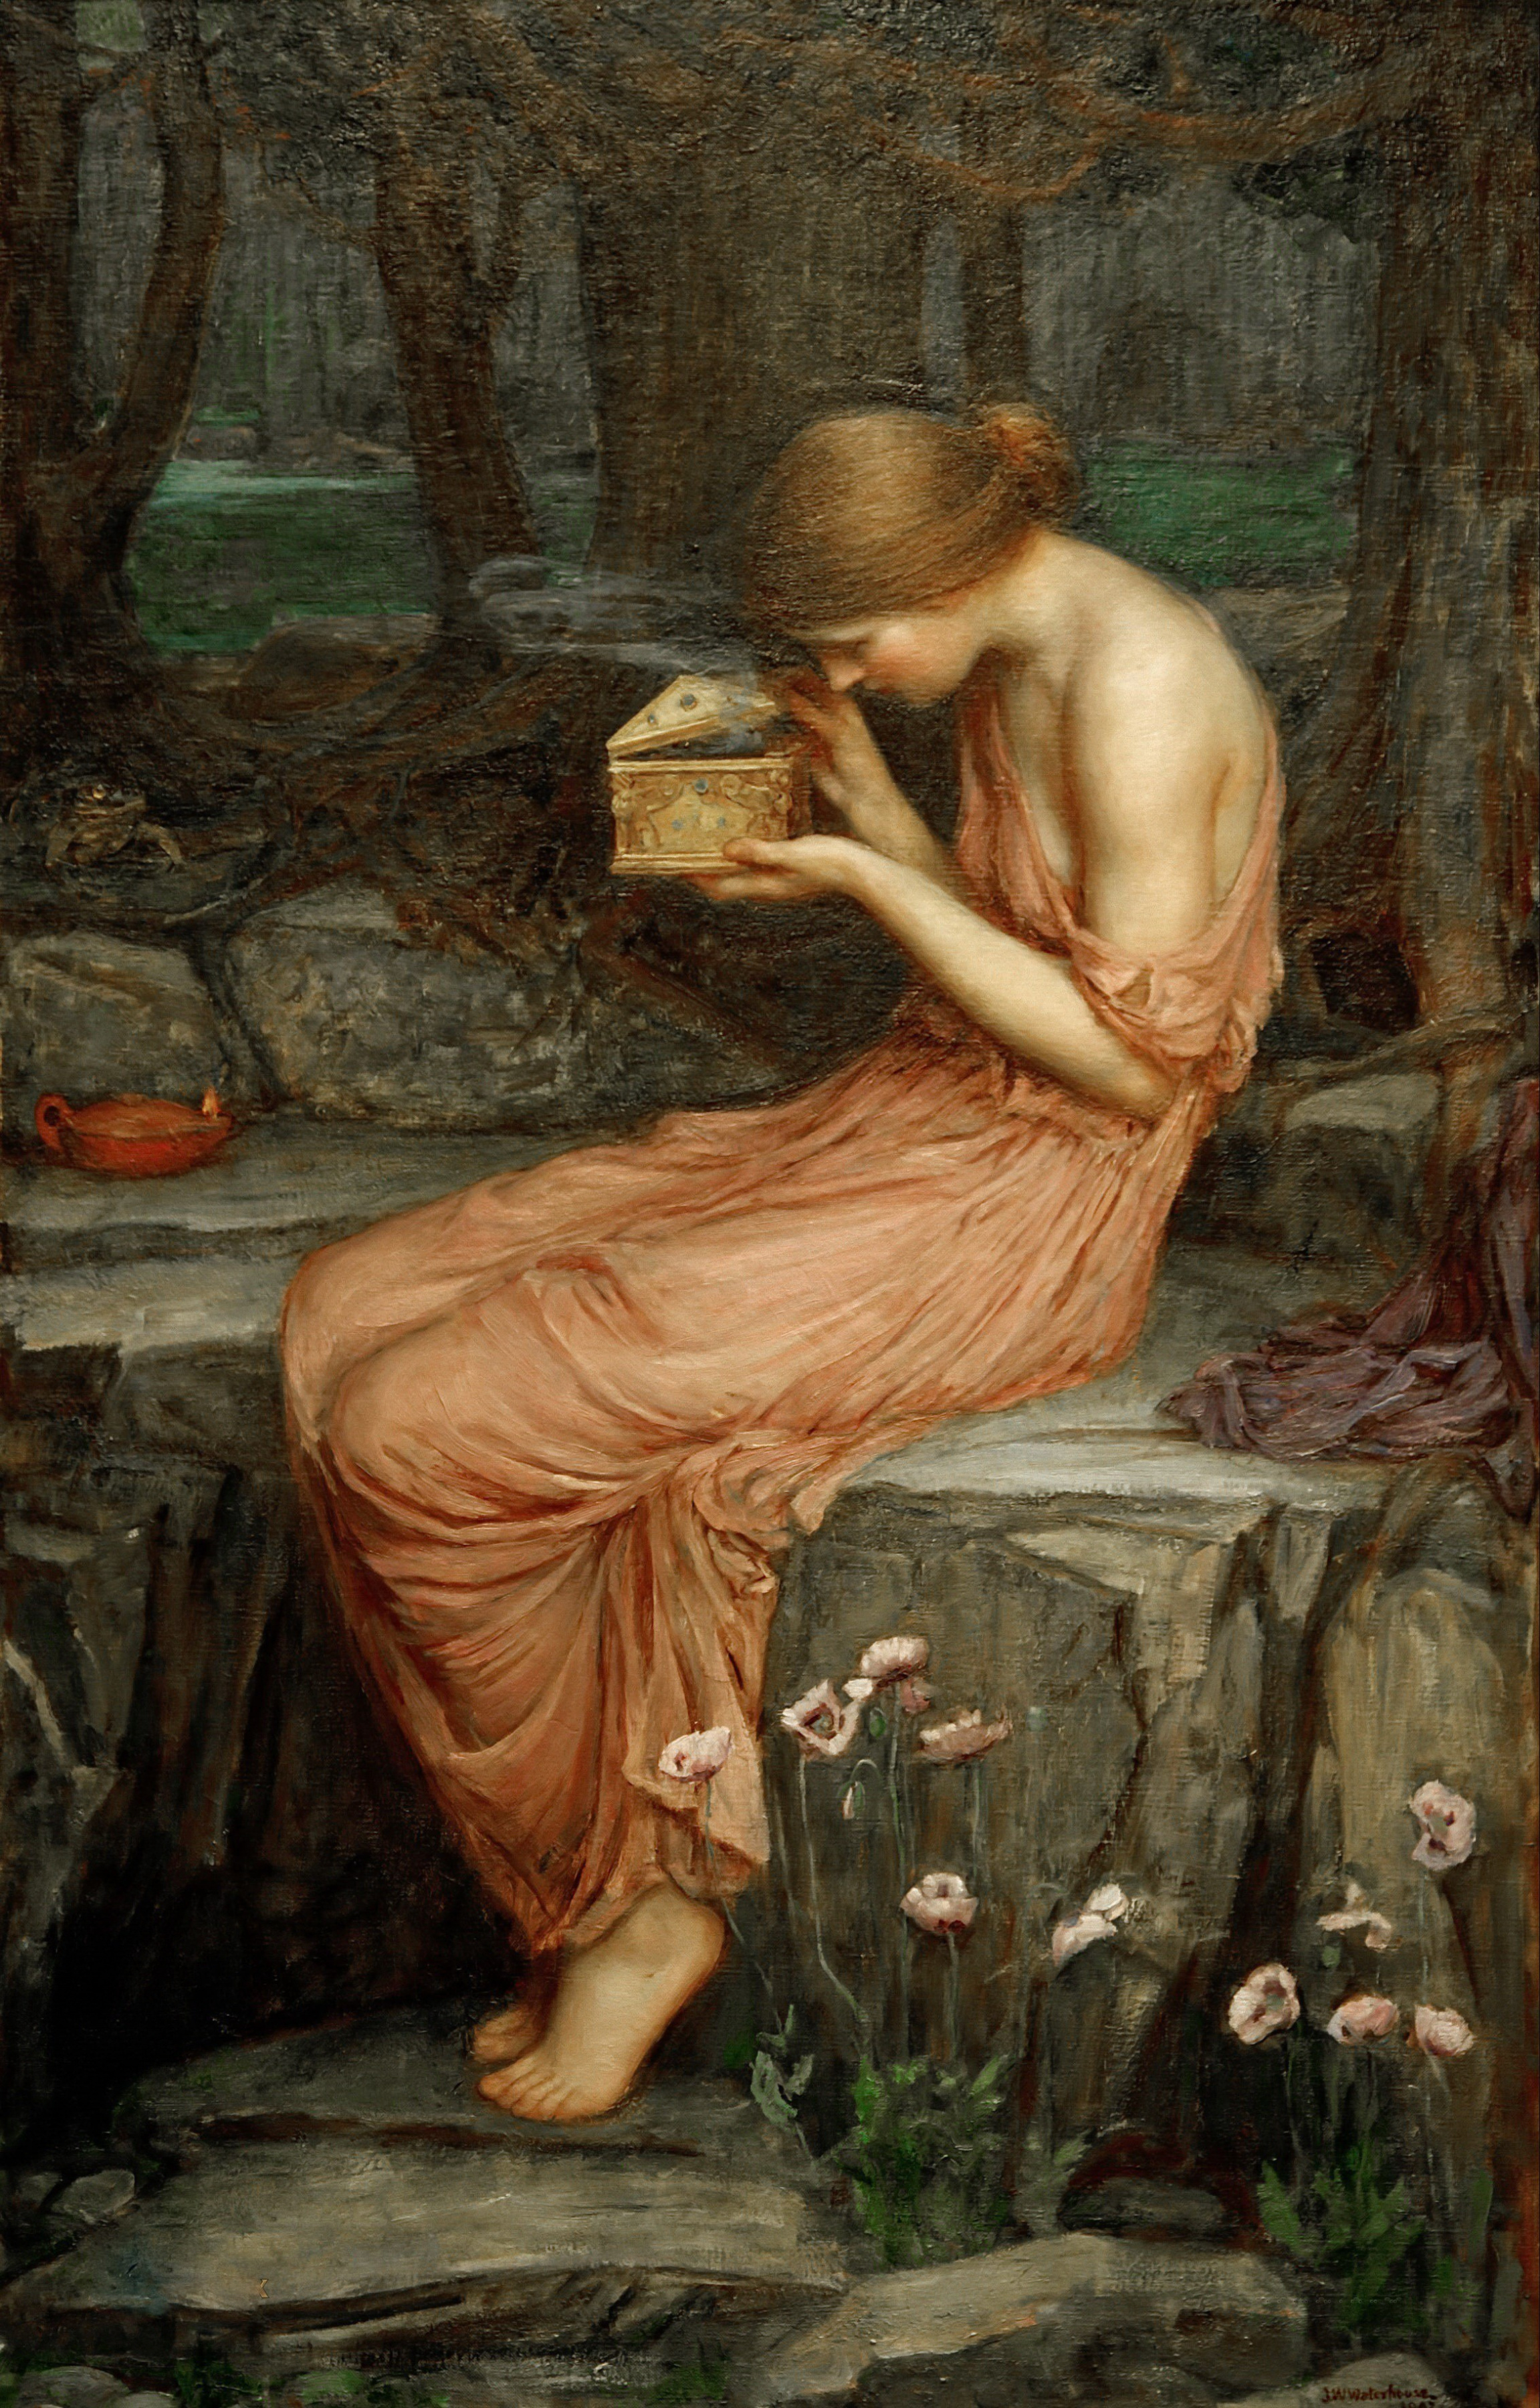 File:Psyche-Waterhouse.jpg